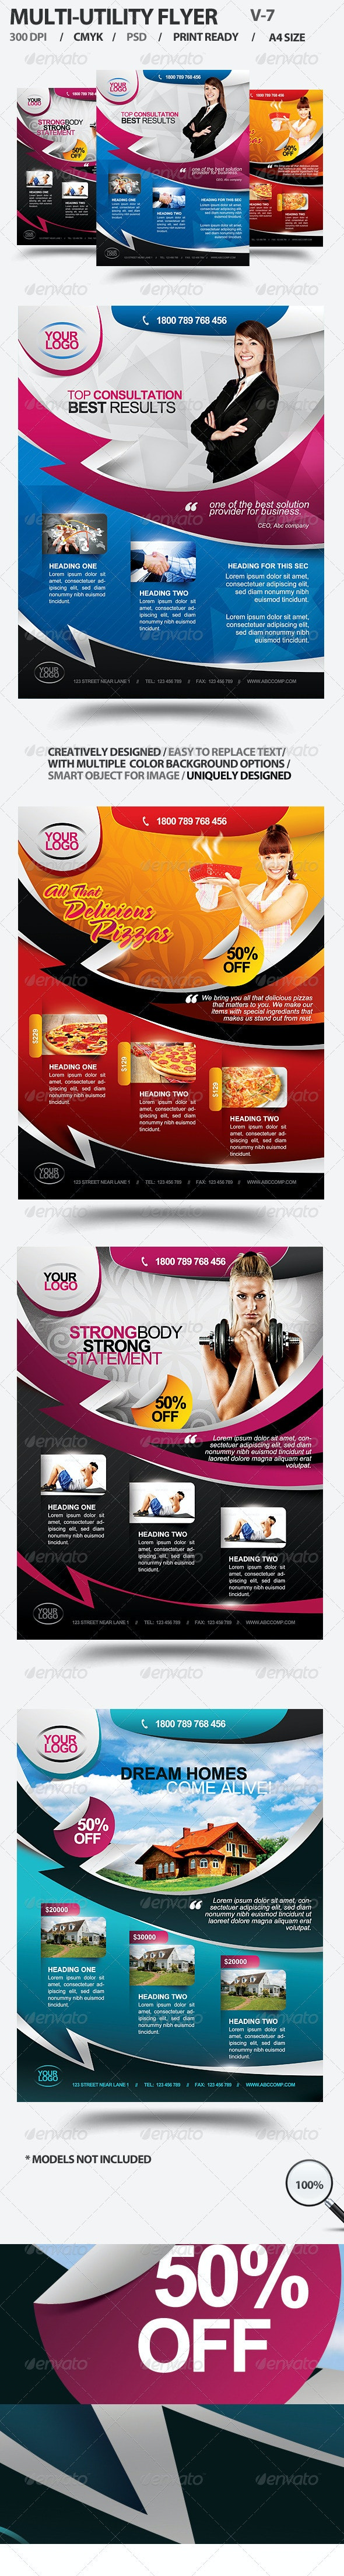 Multi-utility Flyer For Different Business - 7 - Corporate Flyers